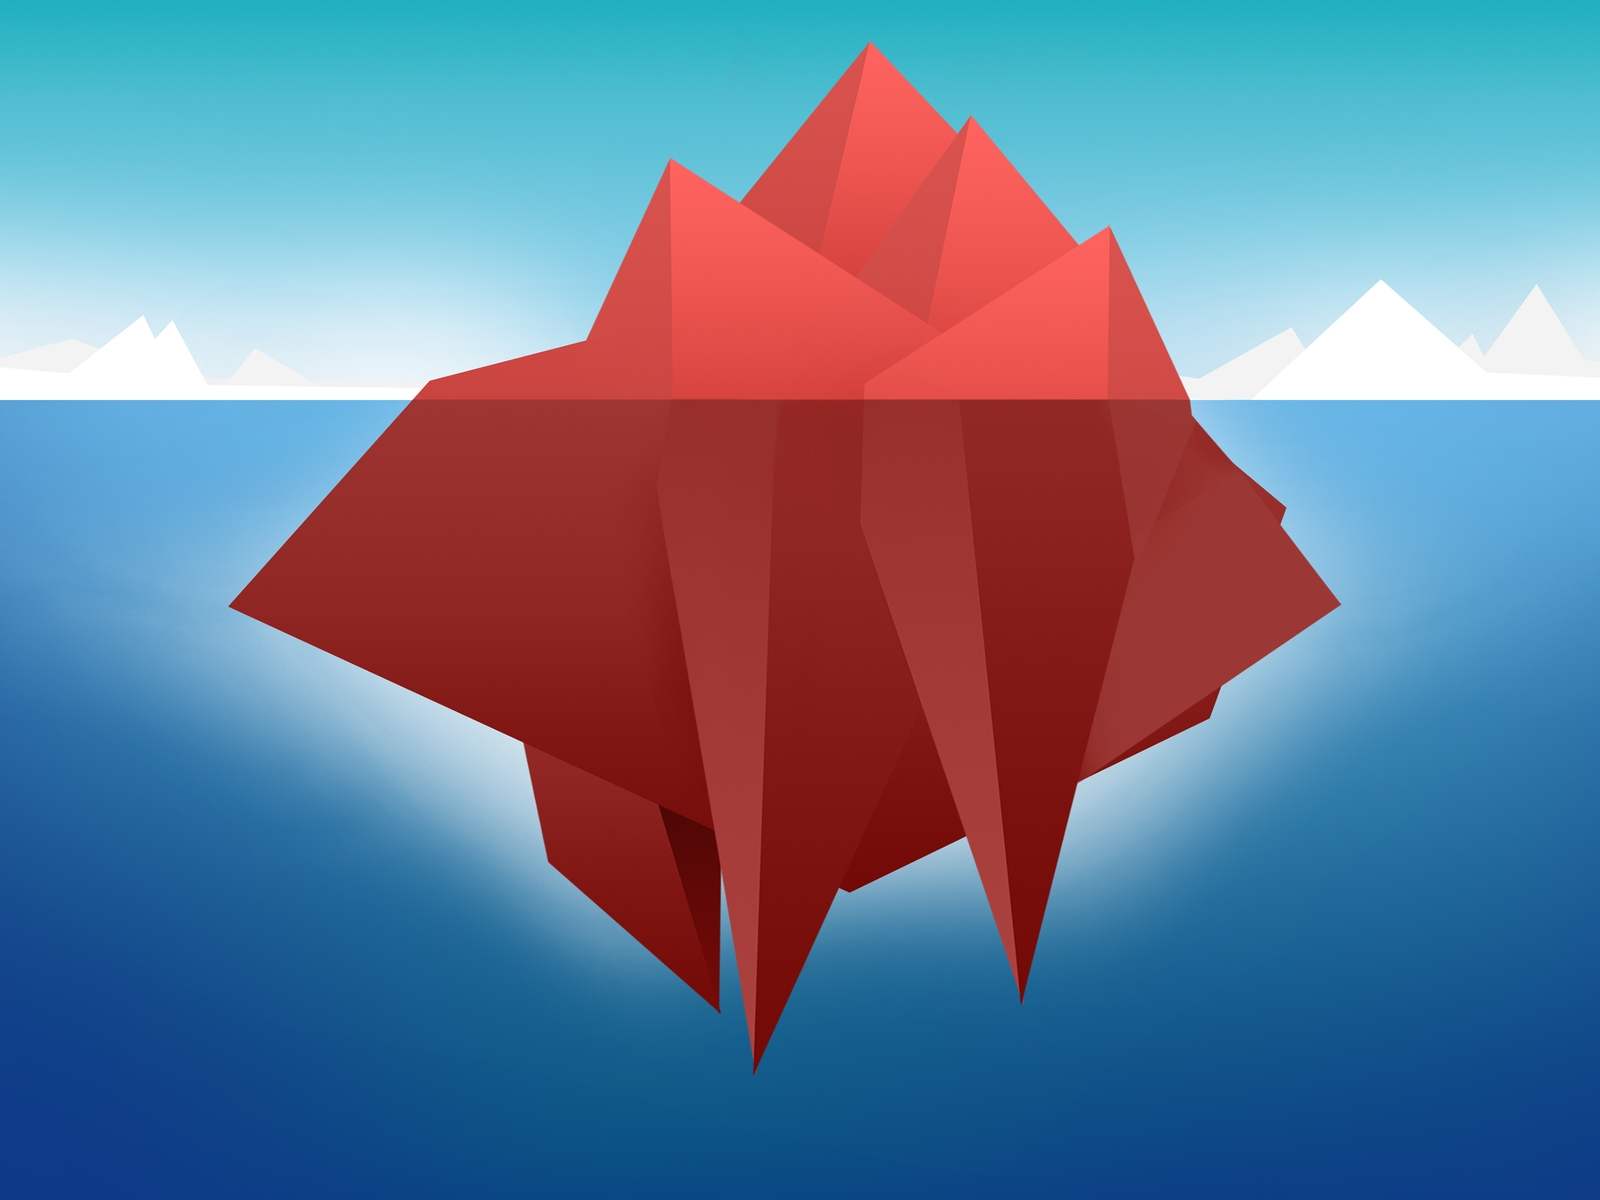 Red Minimal Iceberg for 1600 x 1200 resolution